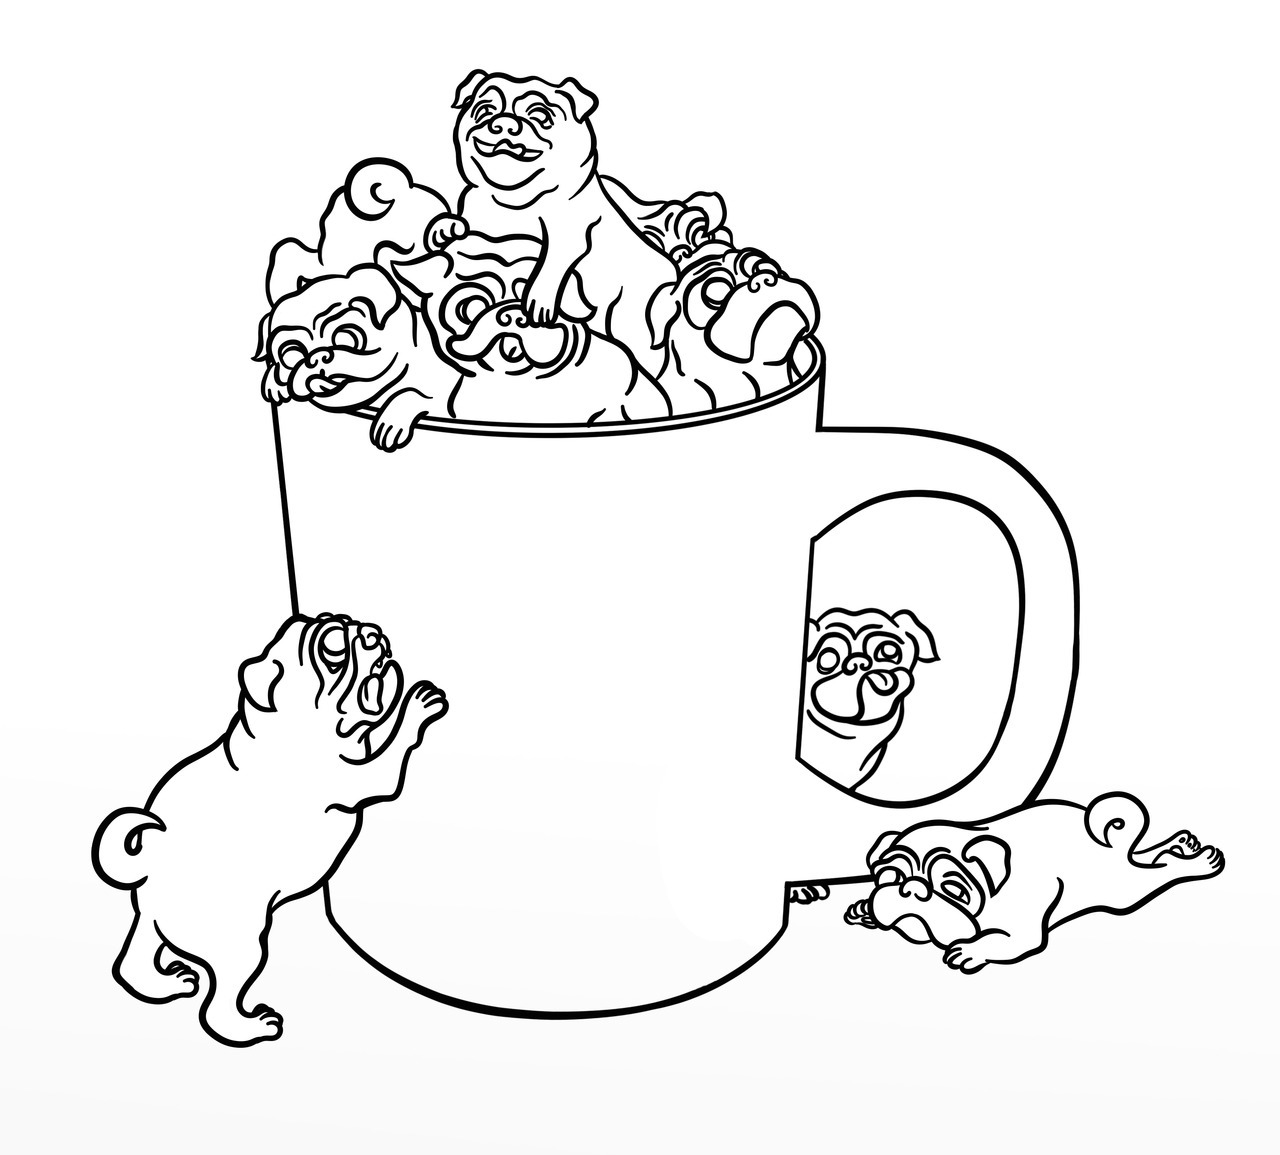 pug coloring pages pug coloring pages getcoloringpagescom coloring pages pug